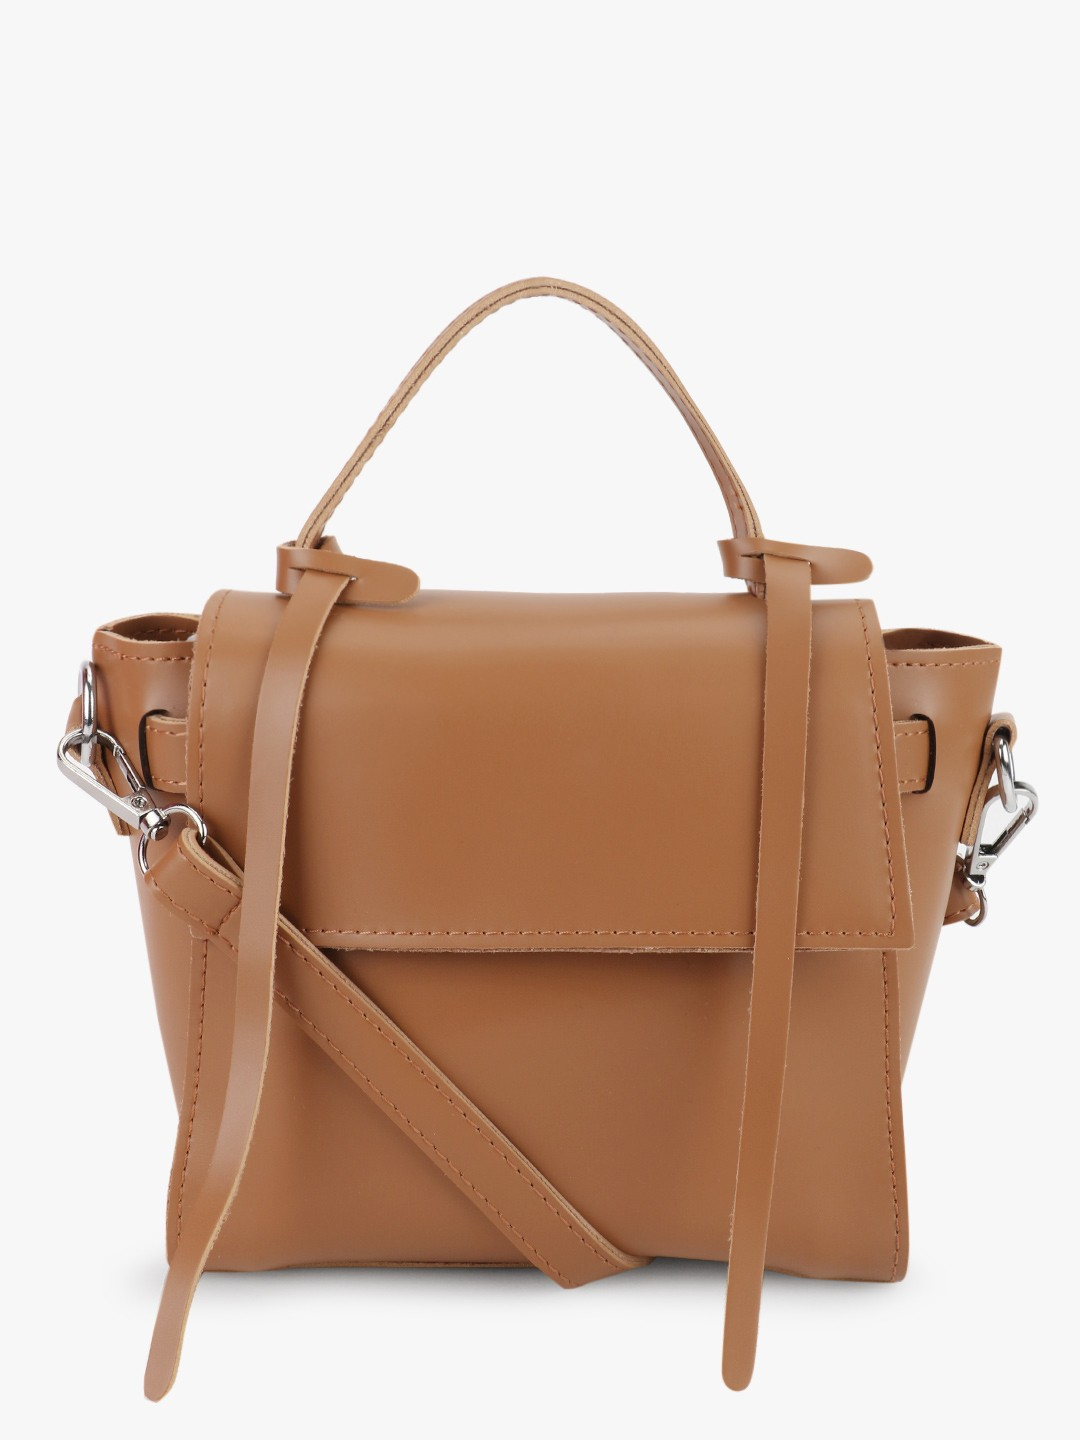 Origami Lily Tan Structured Sling Bag 1